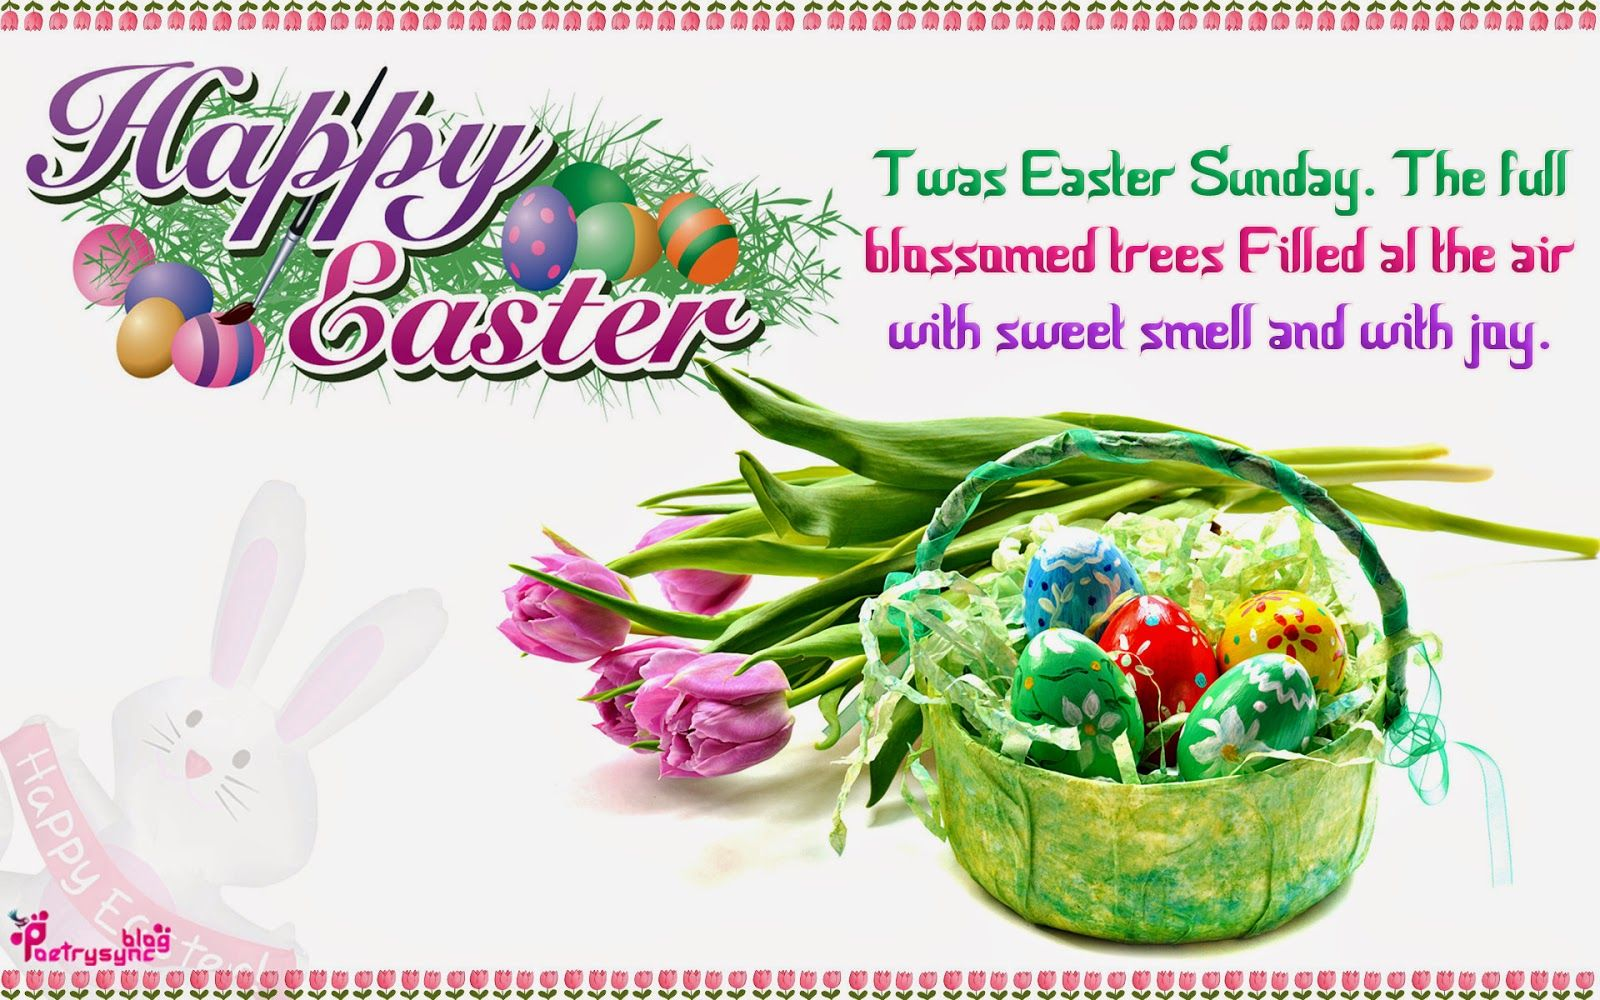 Happy Easter Holiday Wishes and Greetings SMS Wallpaper – Easter Greeting Card Messages